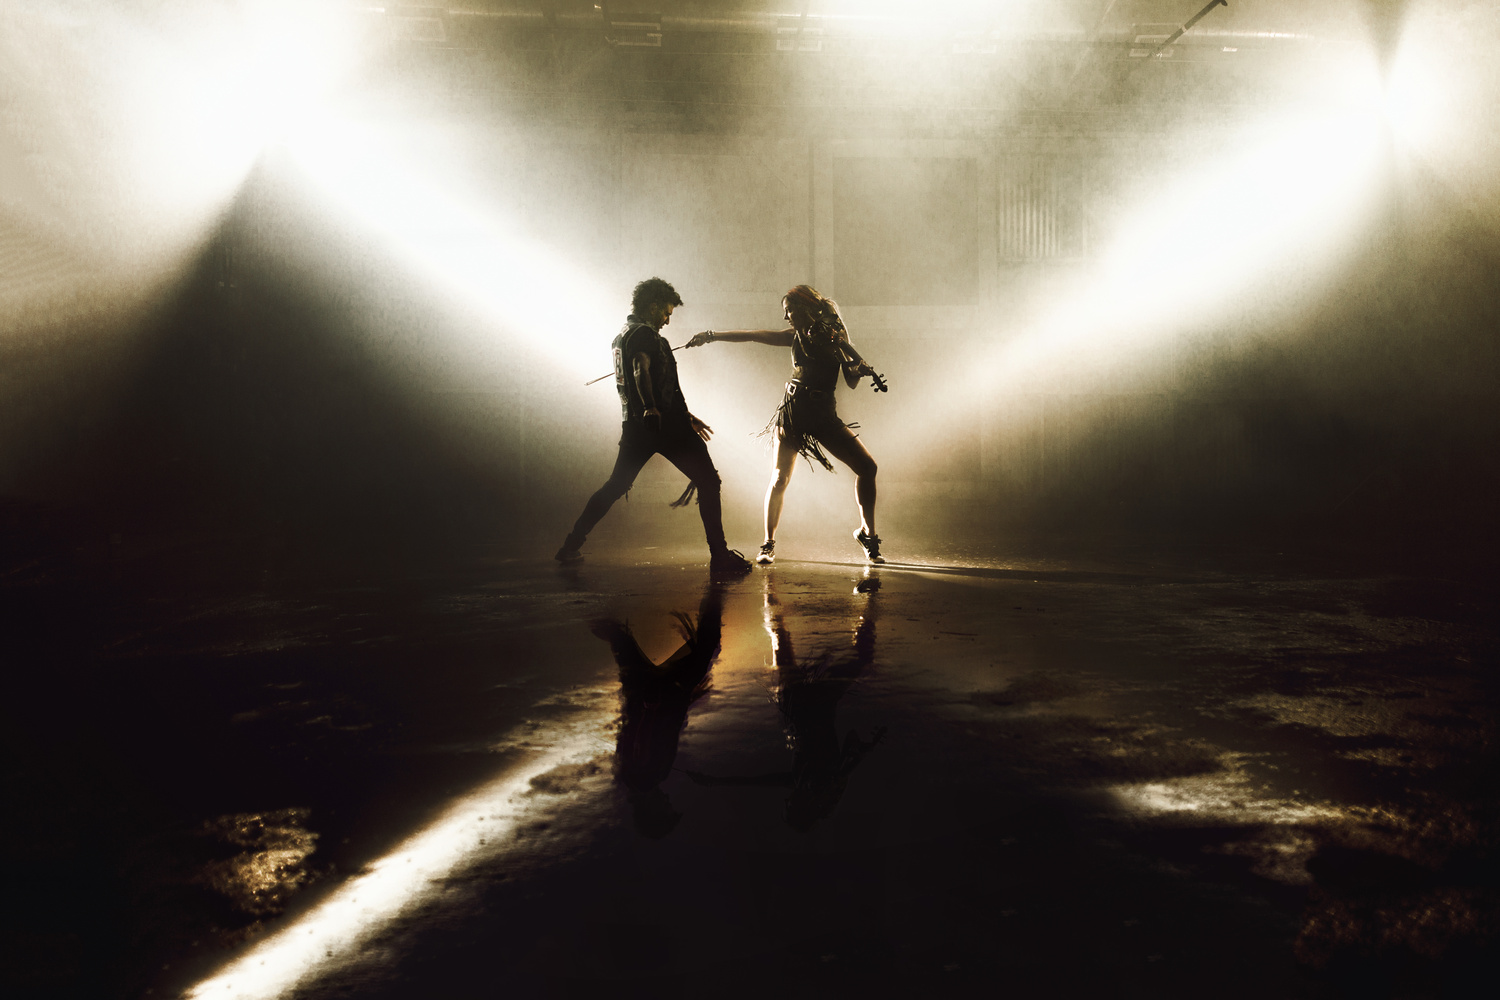 Mark Ballas and Lindsey Stirling by Syd Takeshta